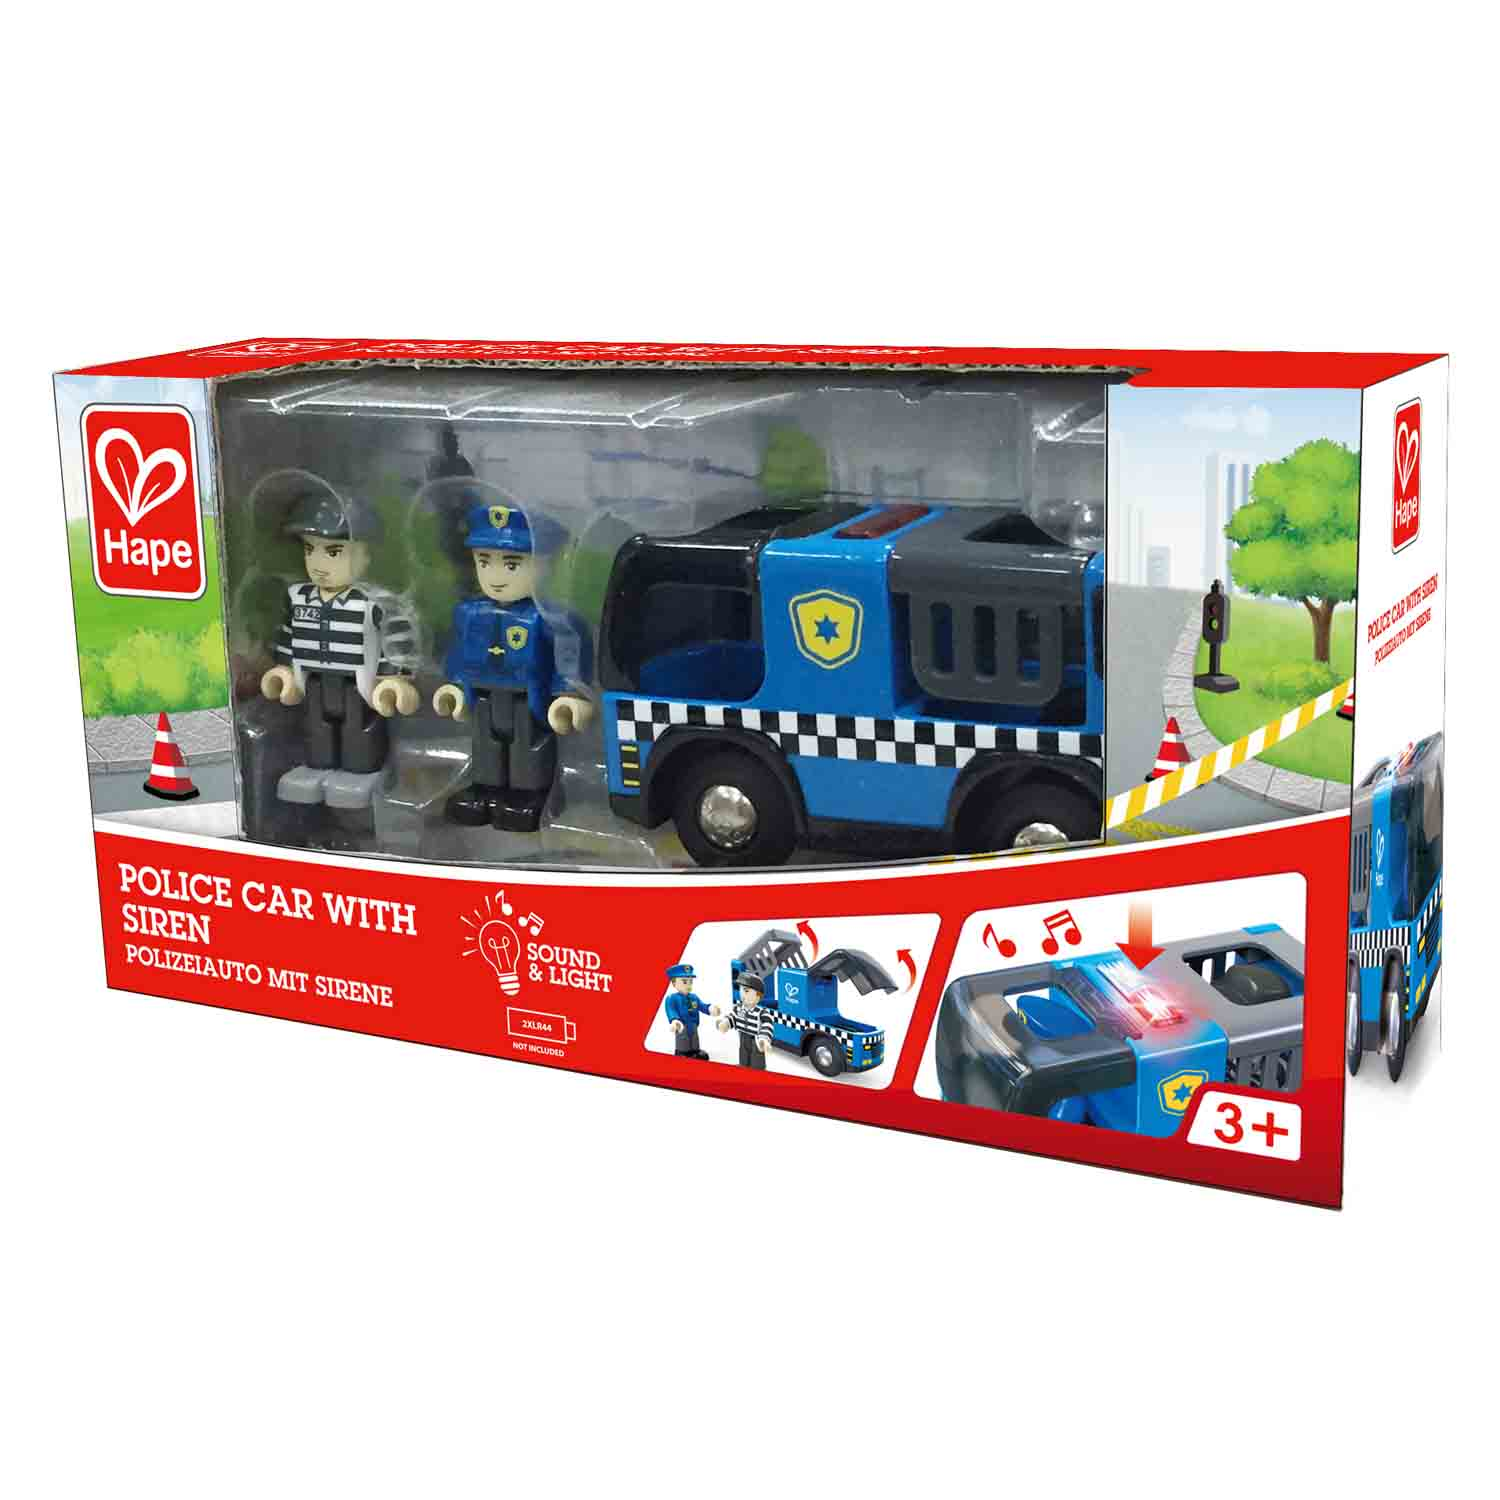 Police Car With Siren E3738 Hape Toys